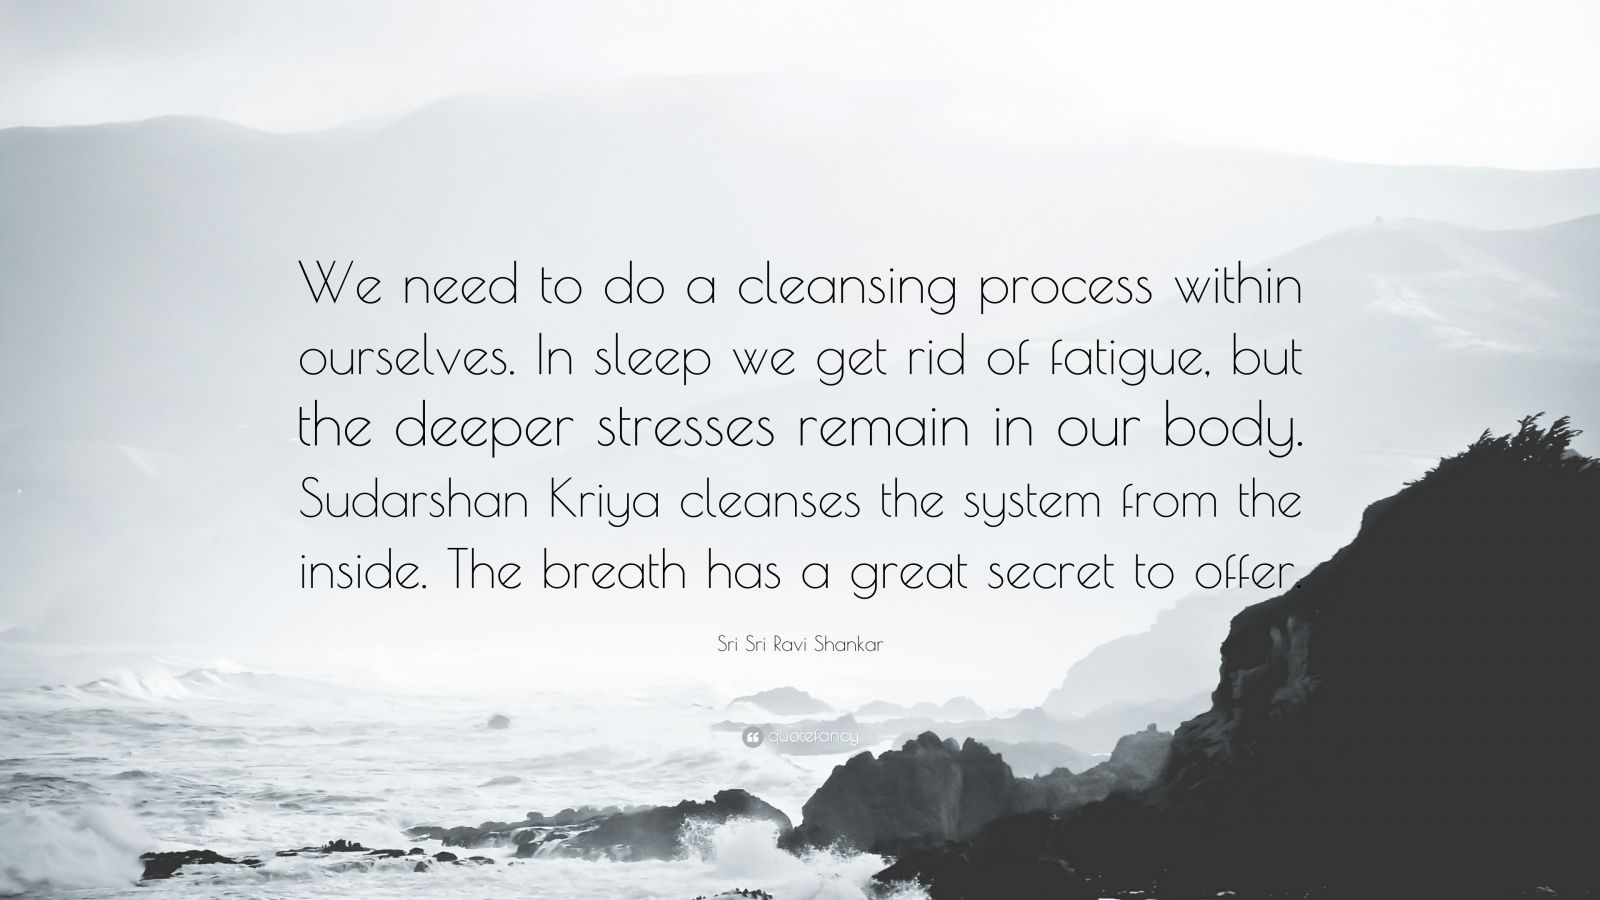 """Sri Sri Ravi Shankar Quote: """"We need to do a cleansing process within ourselves. In sleep we get rid of fatigue, but the deeper stresses remain in our body. Sudarshan Kriya cleanses the system from the inside. The breath has a great secret to offer."""""""